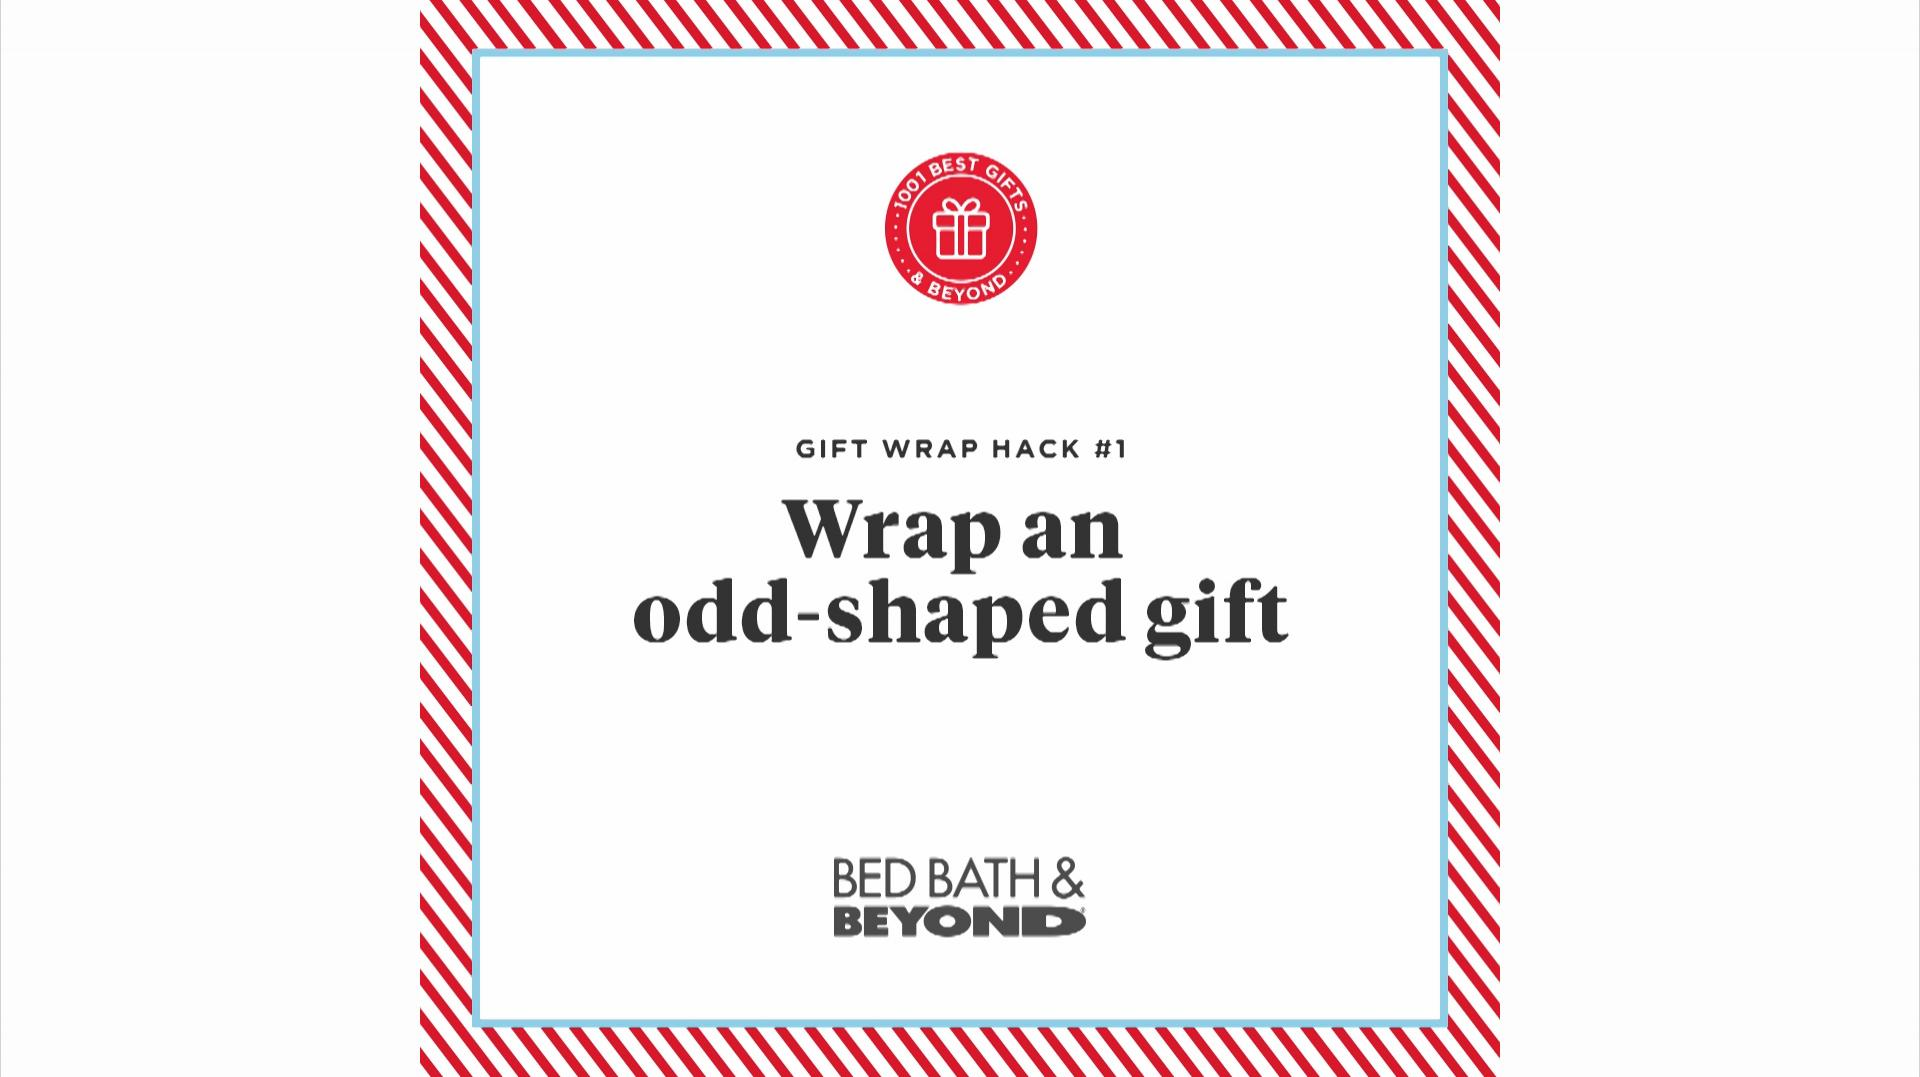 Wrap an Odd-Shaped Gift: Fitness